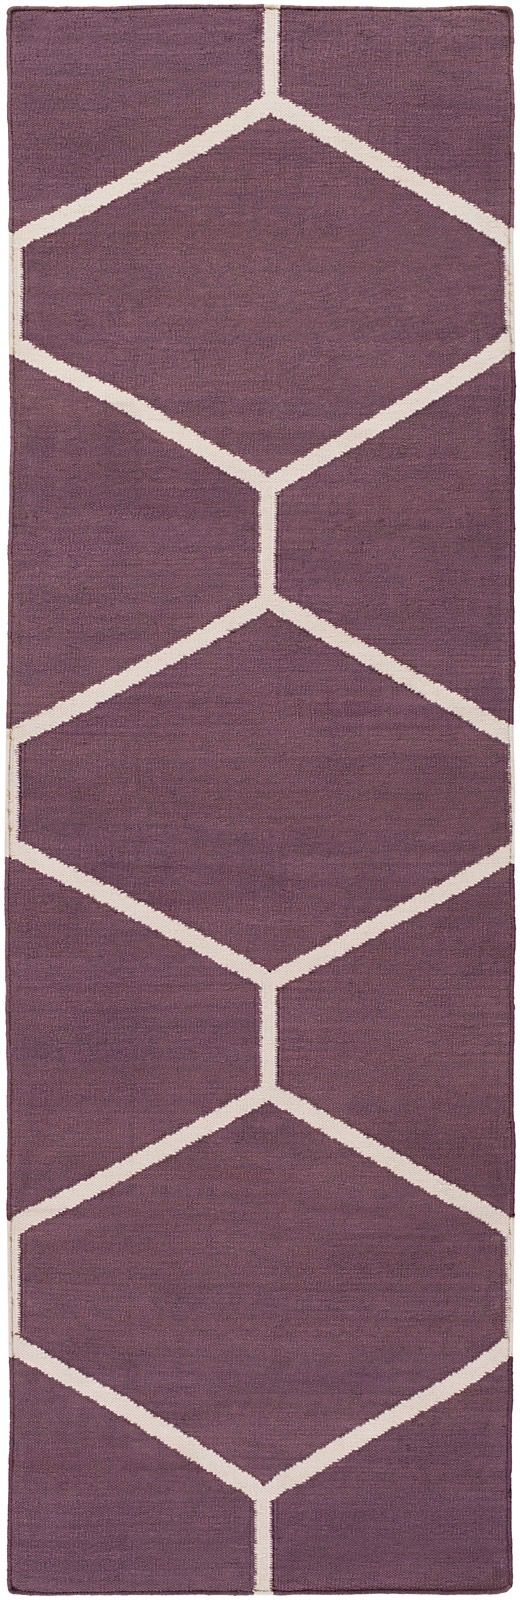 surya atrium contemporary area rug collection